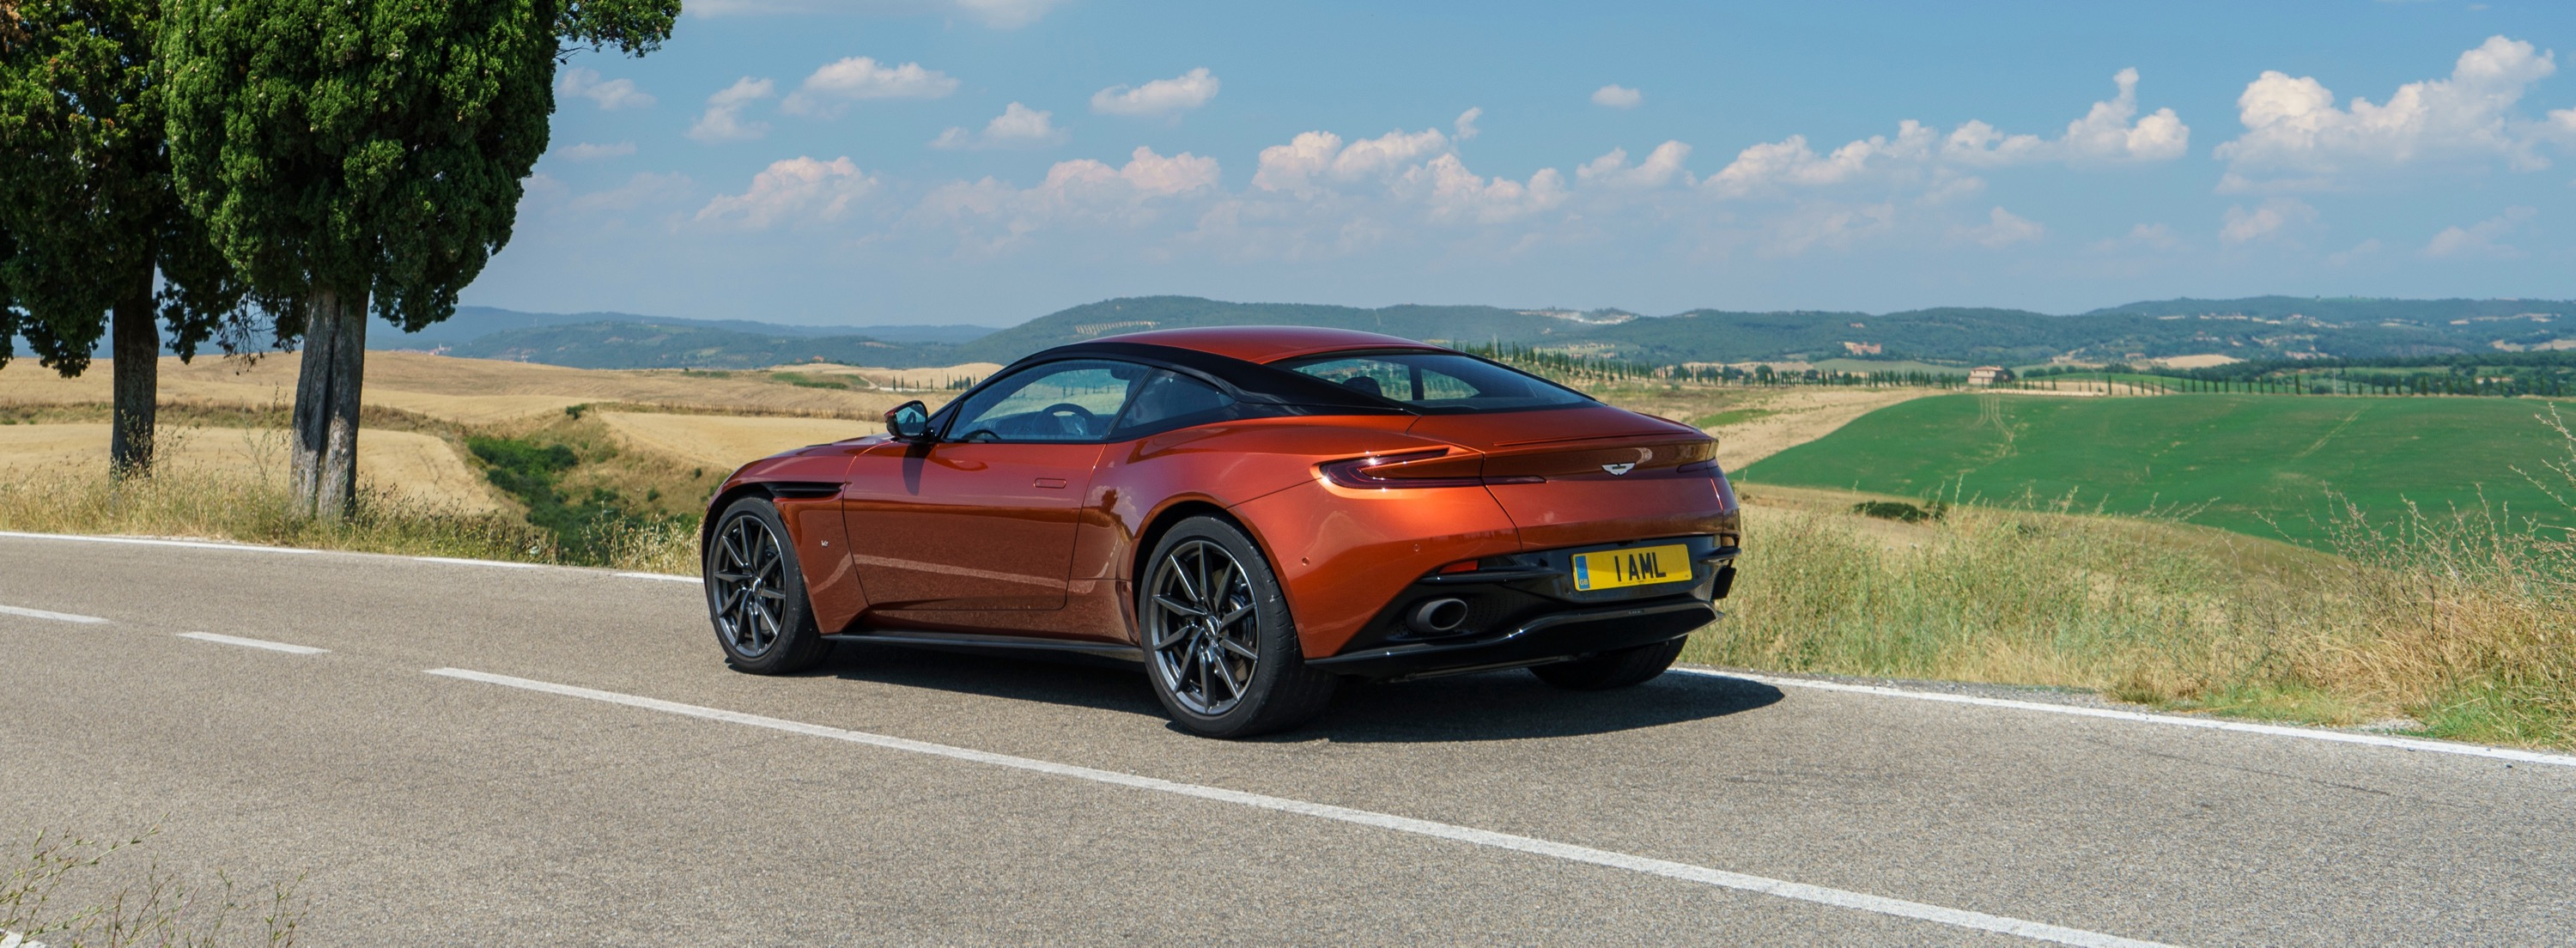 Aston Martin DB11 photo 167252